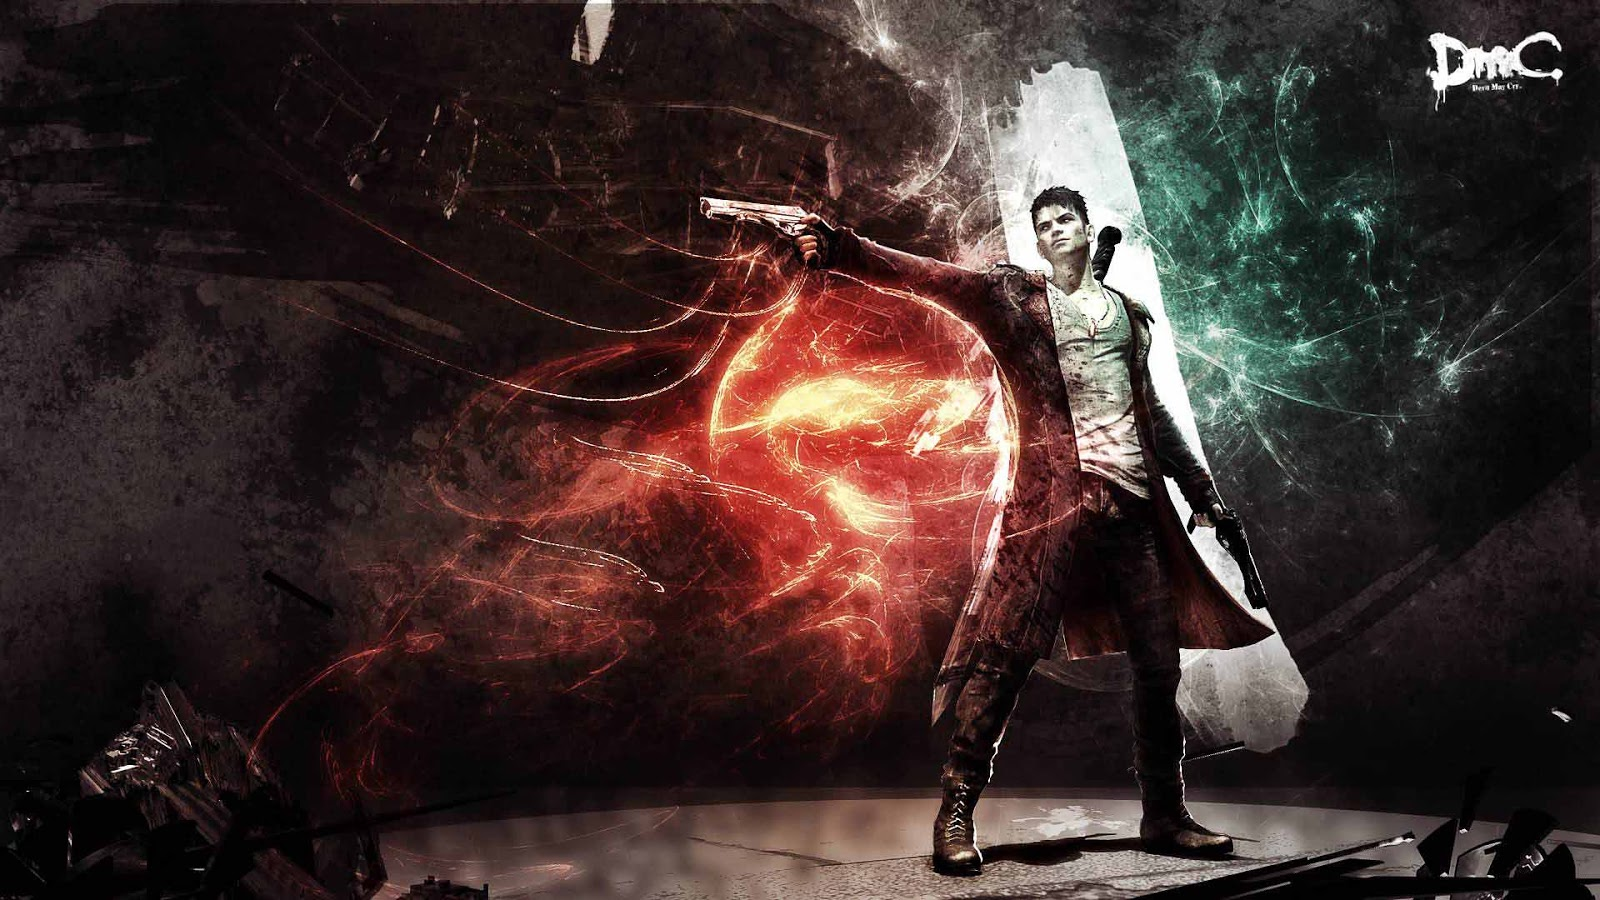 Hq wallpapers devil may cry hd wallpapers hq wallpapers provides latest high resolution wallpapers in wide screen also find here animal wallpapers vehicles wallpapers 3d wallpapers voltagebd Gallery